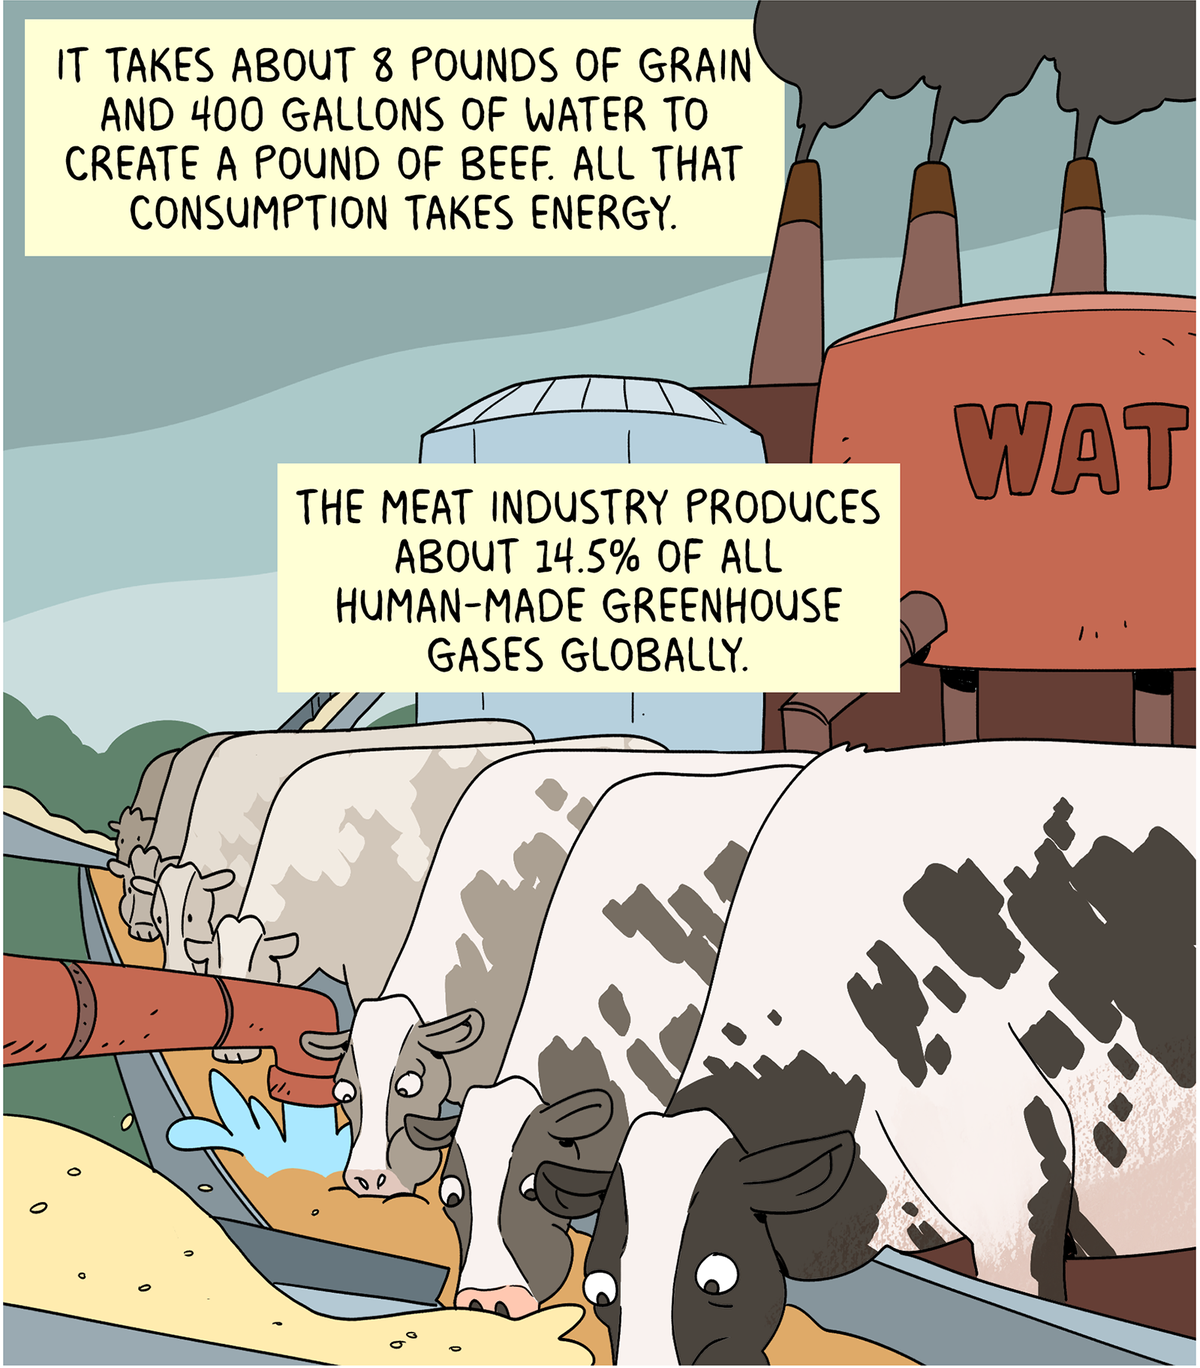 It takes about 8 pounds of grain and 400 gallons of water to create a pound of beef. All that consumption takes energy. The meat industry produces about 14.5% of all human-made greenhouse gases globally.